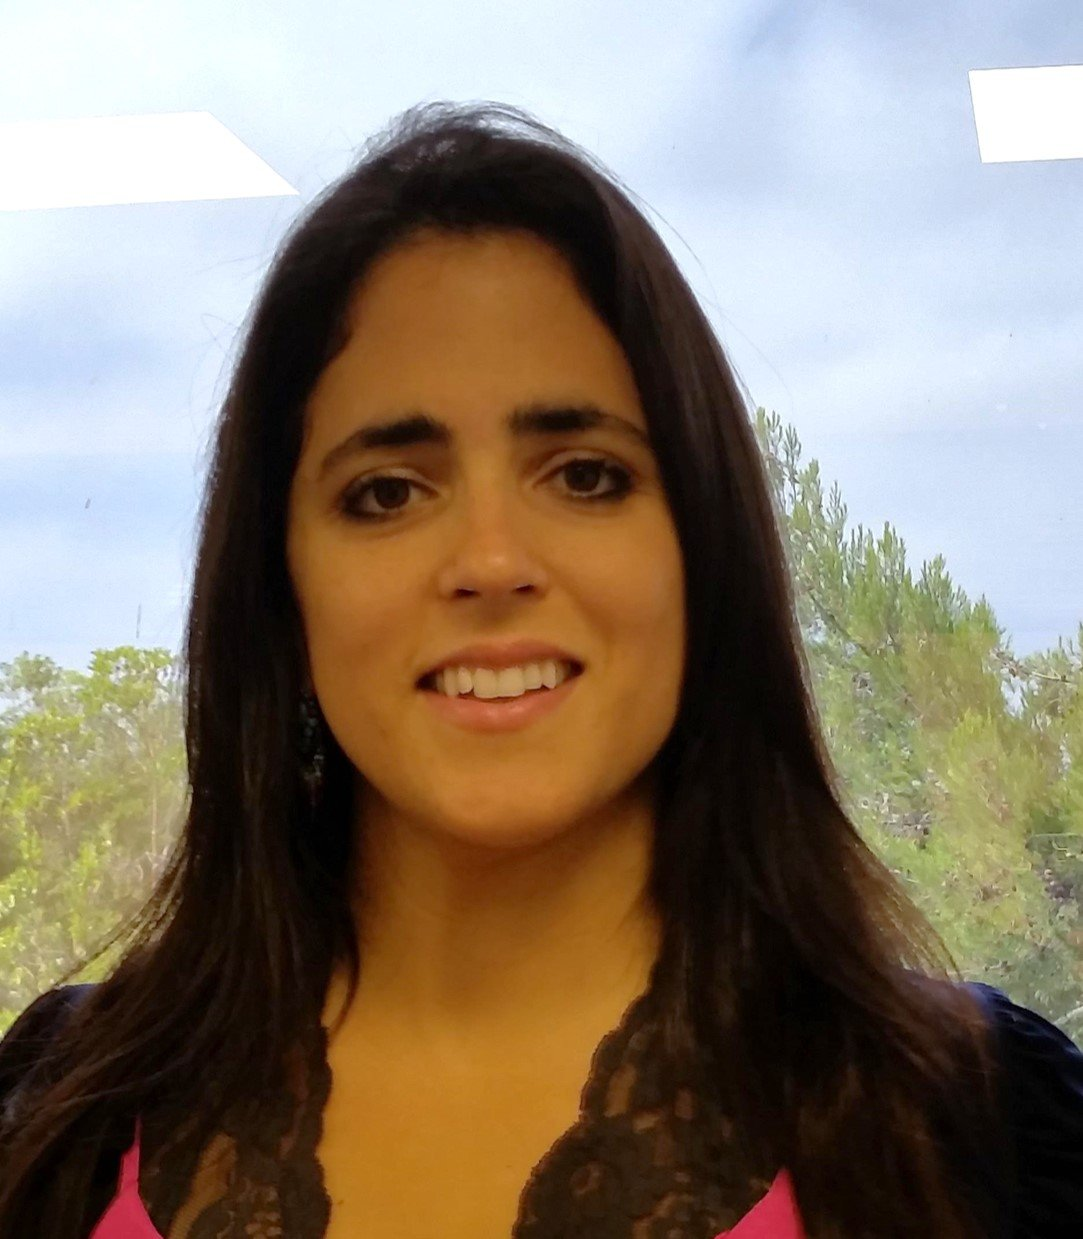 Abigail D'Agostino - One of our newest Board Members